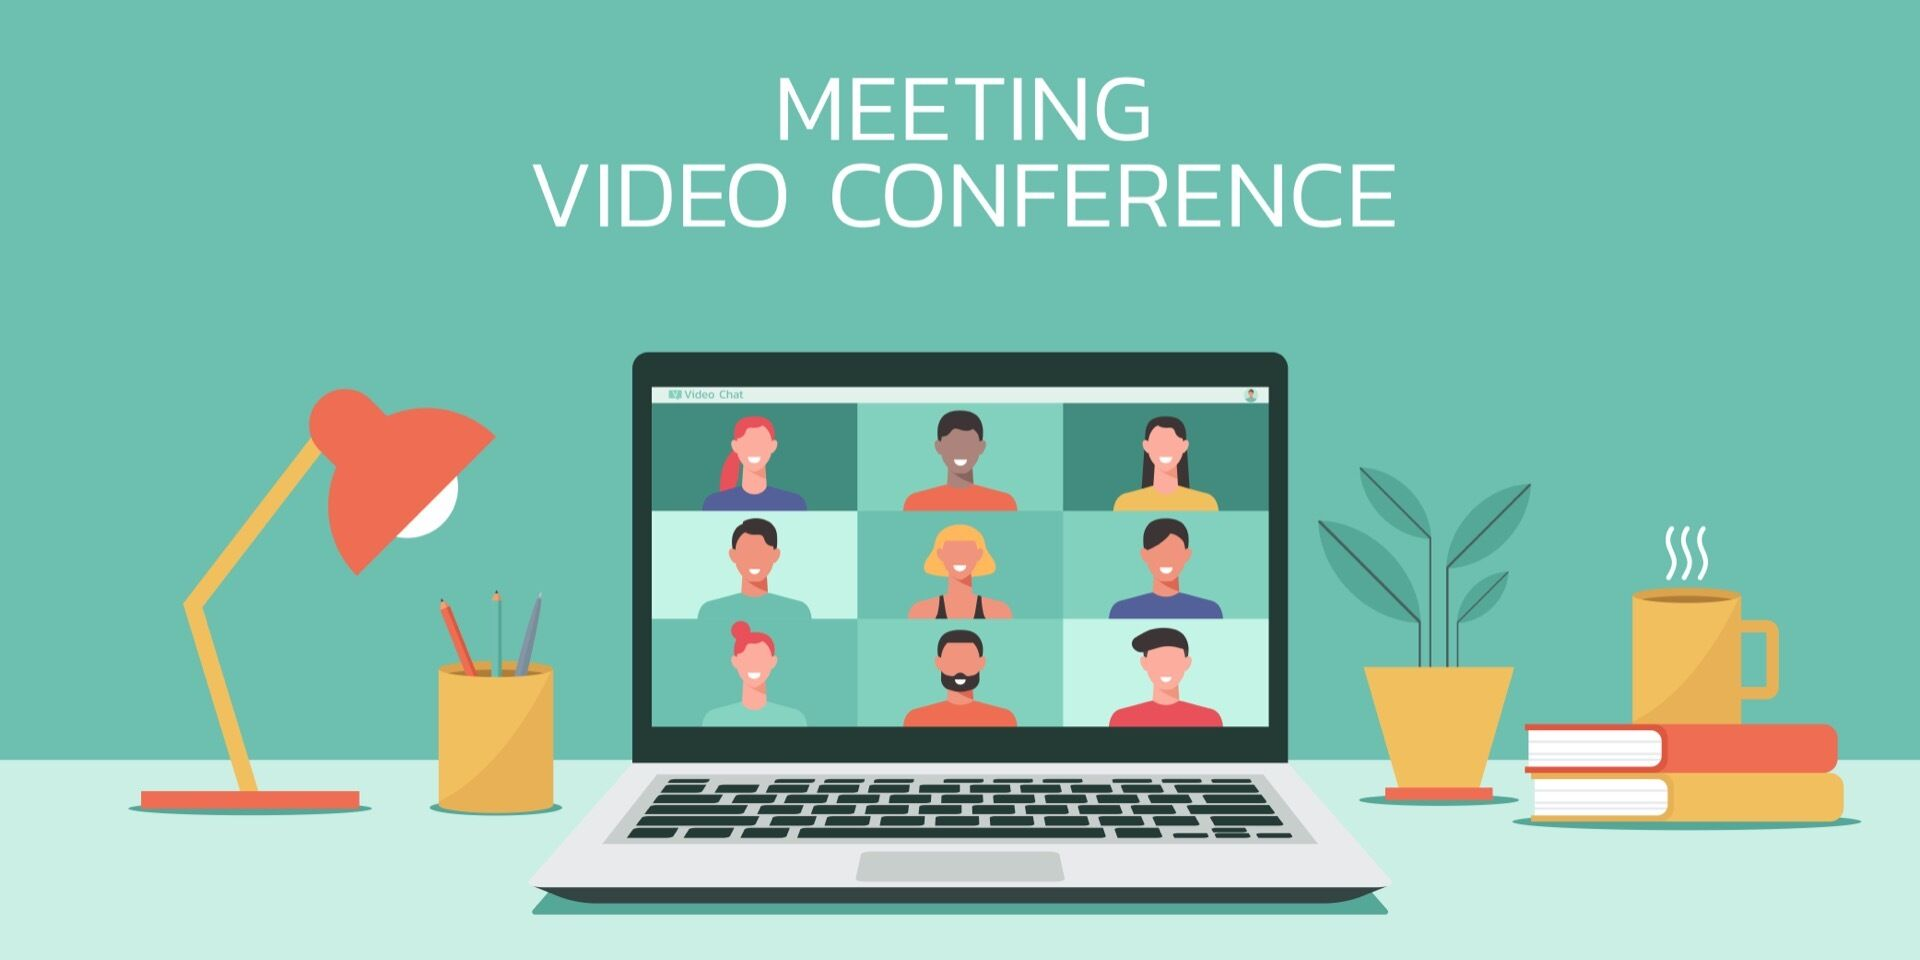 Online meetings via ZOOM – a practical example